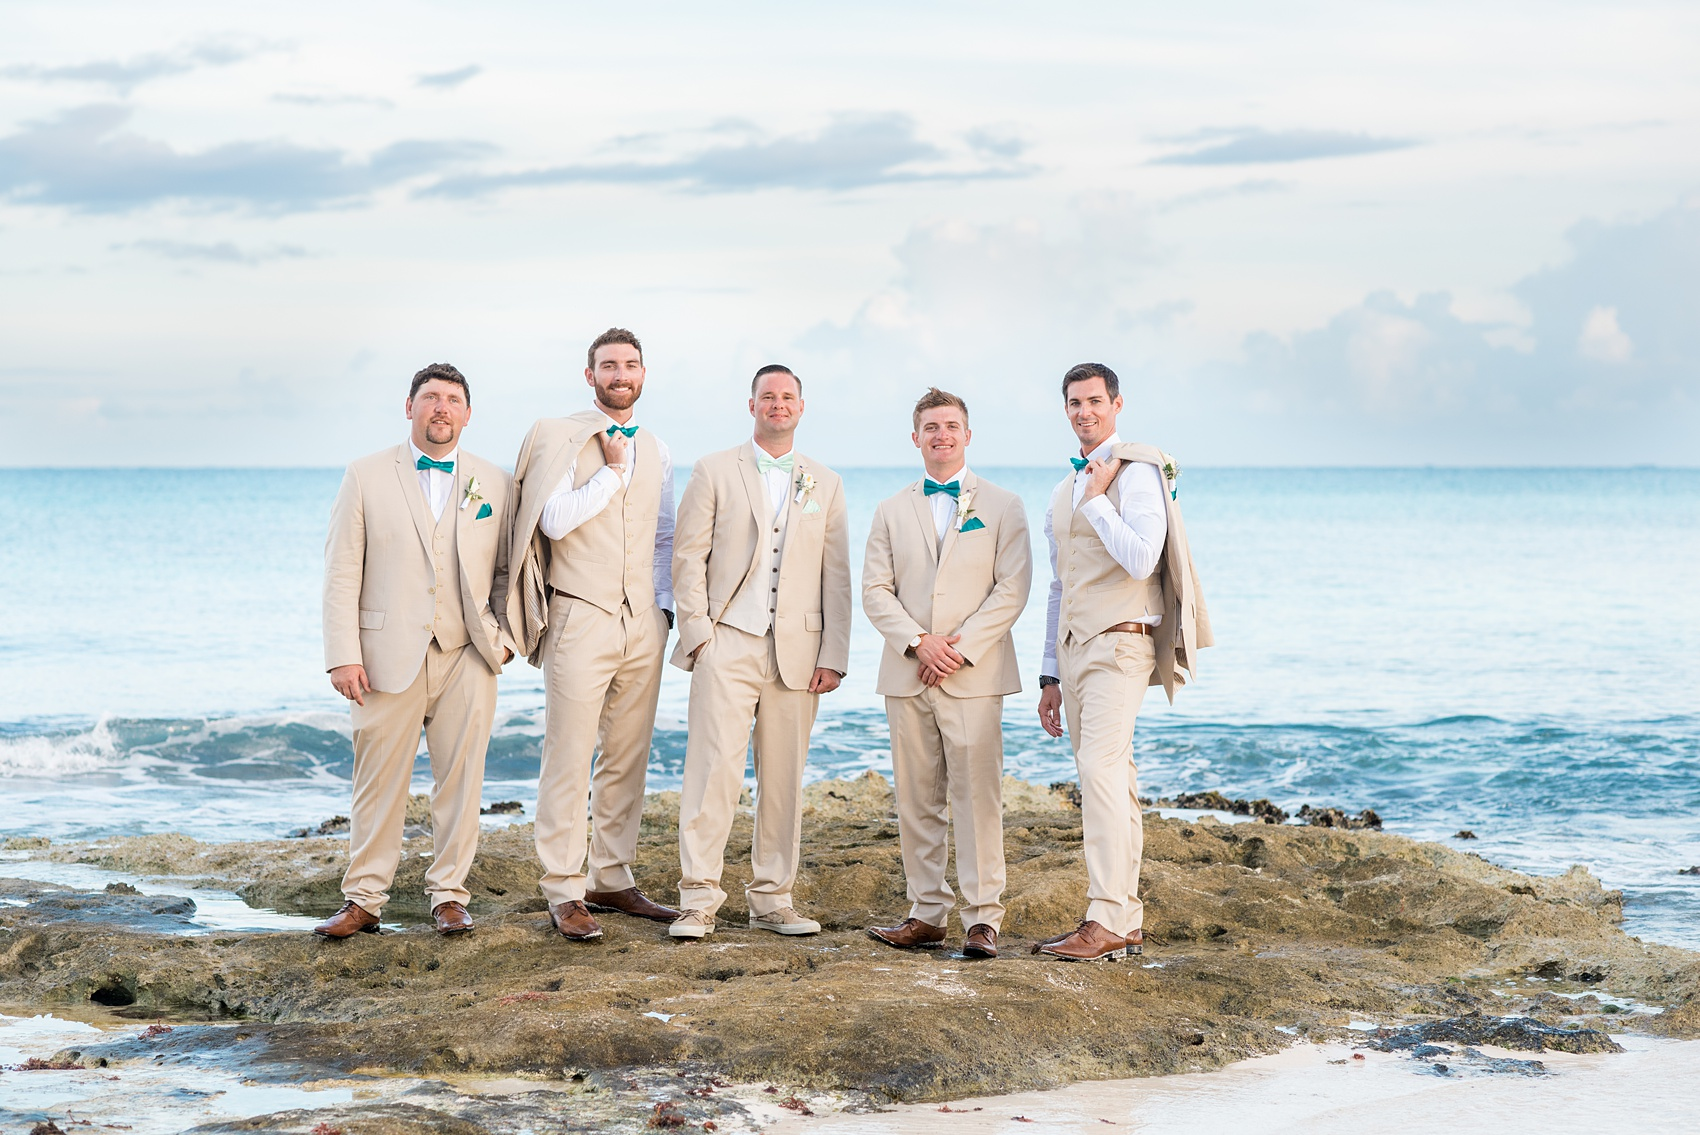 Mikkel Paige Photography photos from a wedding at Grand Paraiso, Mexico, Playa del Carmen Iberostar resort. Picture of the groomsmen on the beach in tan suits and teal bow ties.